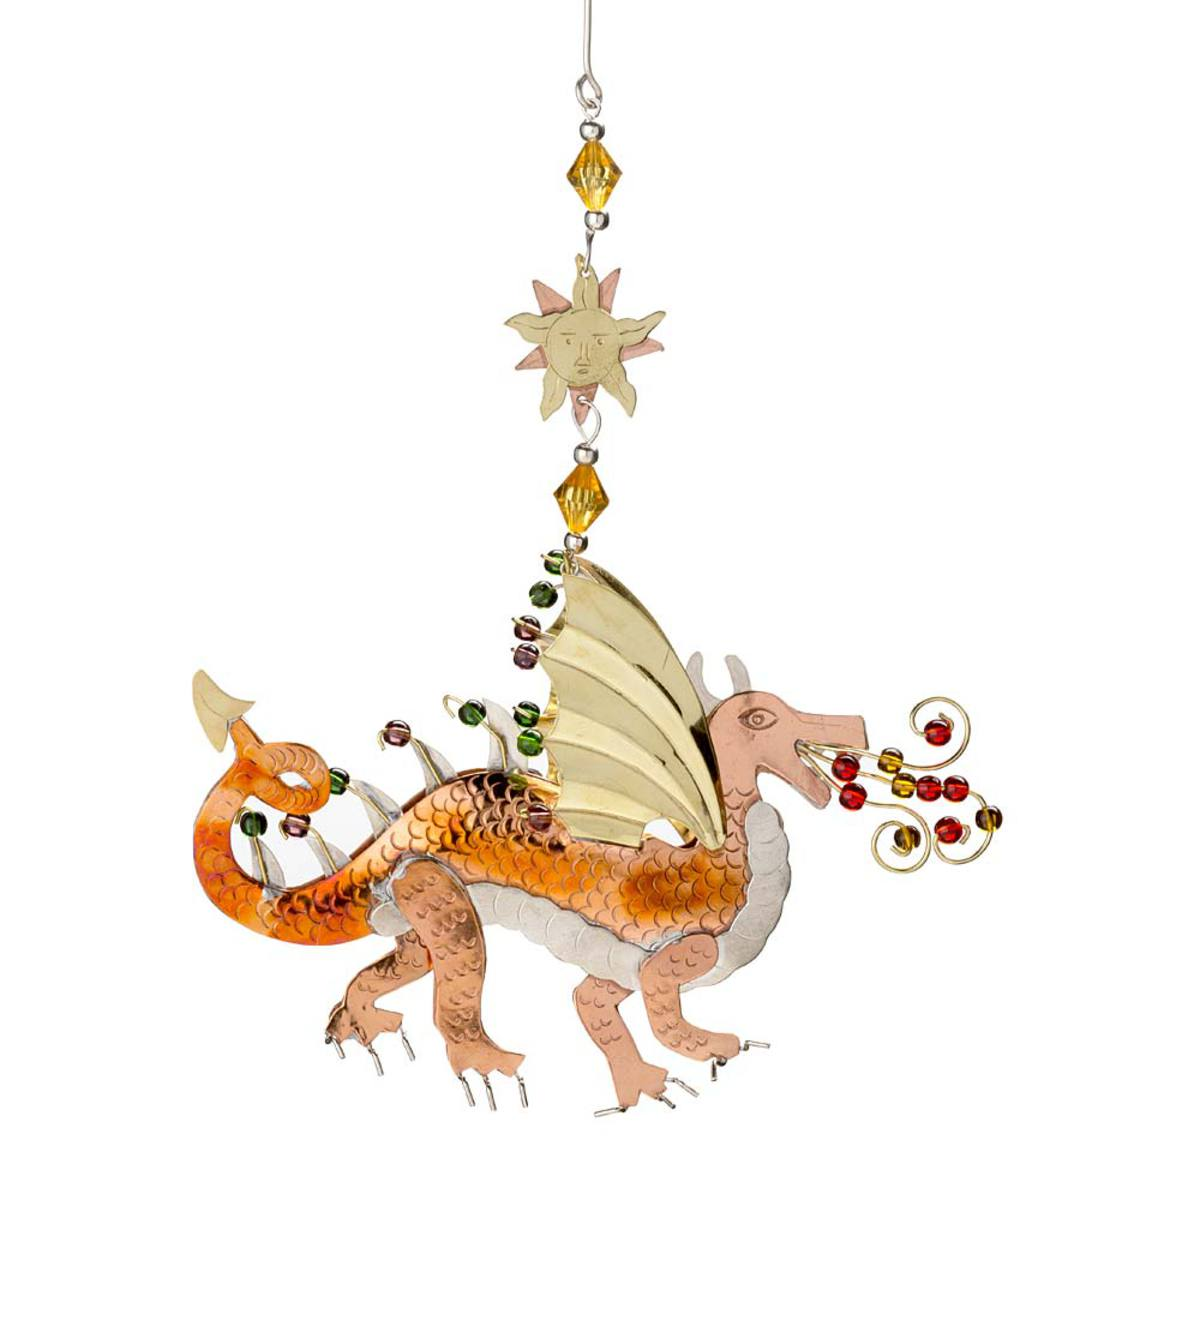 Tri-Metal Jeweled Dragon Ornament